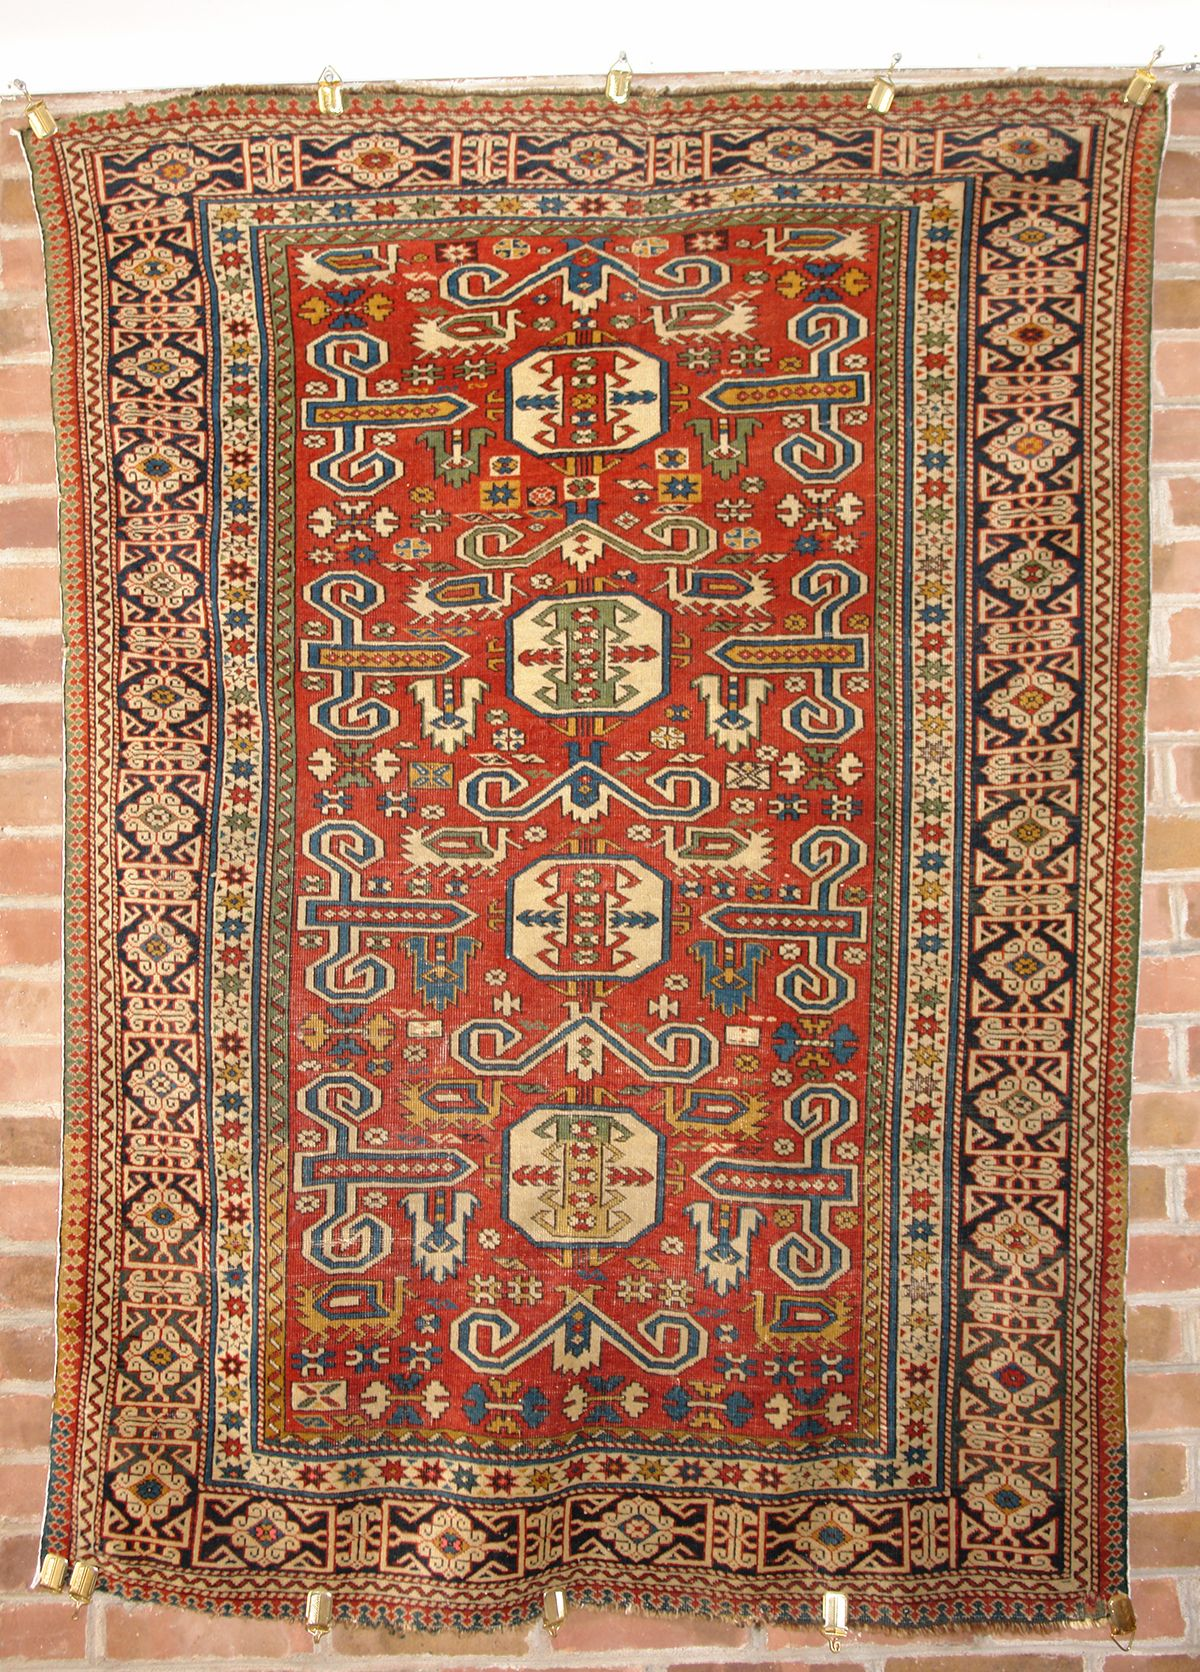 Perepedil Rug Circa 1875 1900 Sold At Sotheby S Extremely Finely Woven Perepedil Rugs From The Shirvan Area Of The South Caucasus Are More Frequent Textil